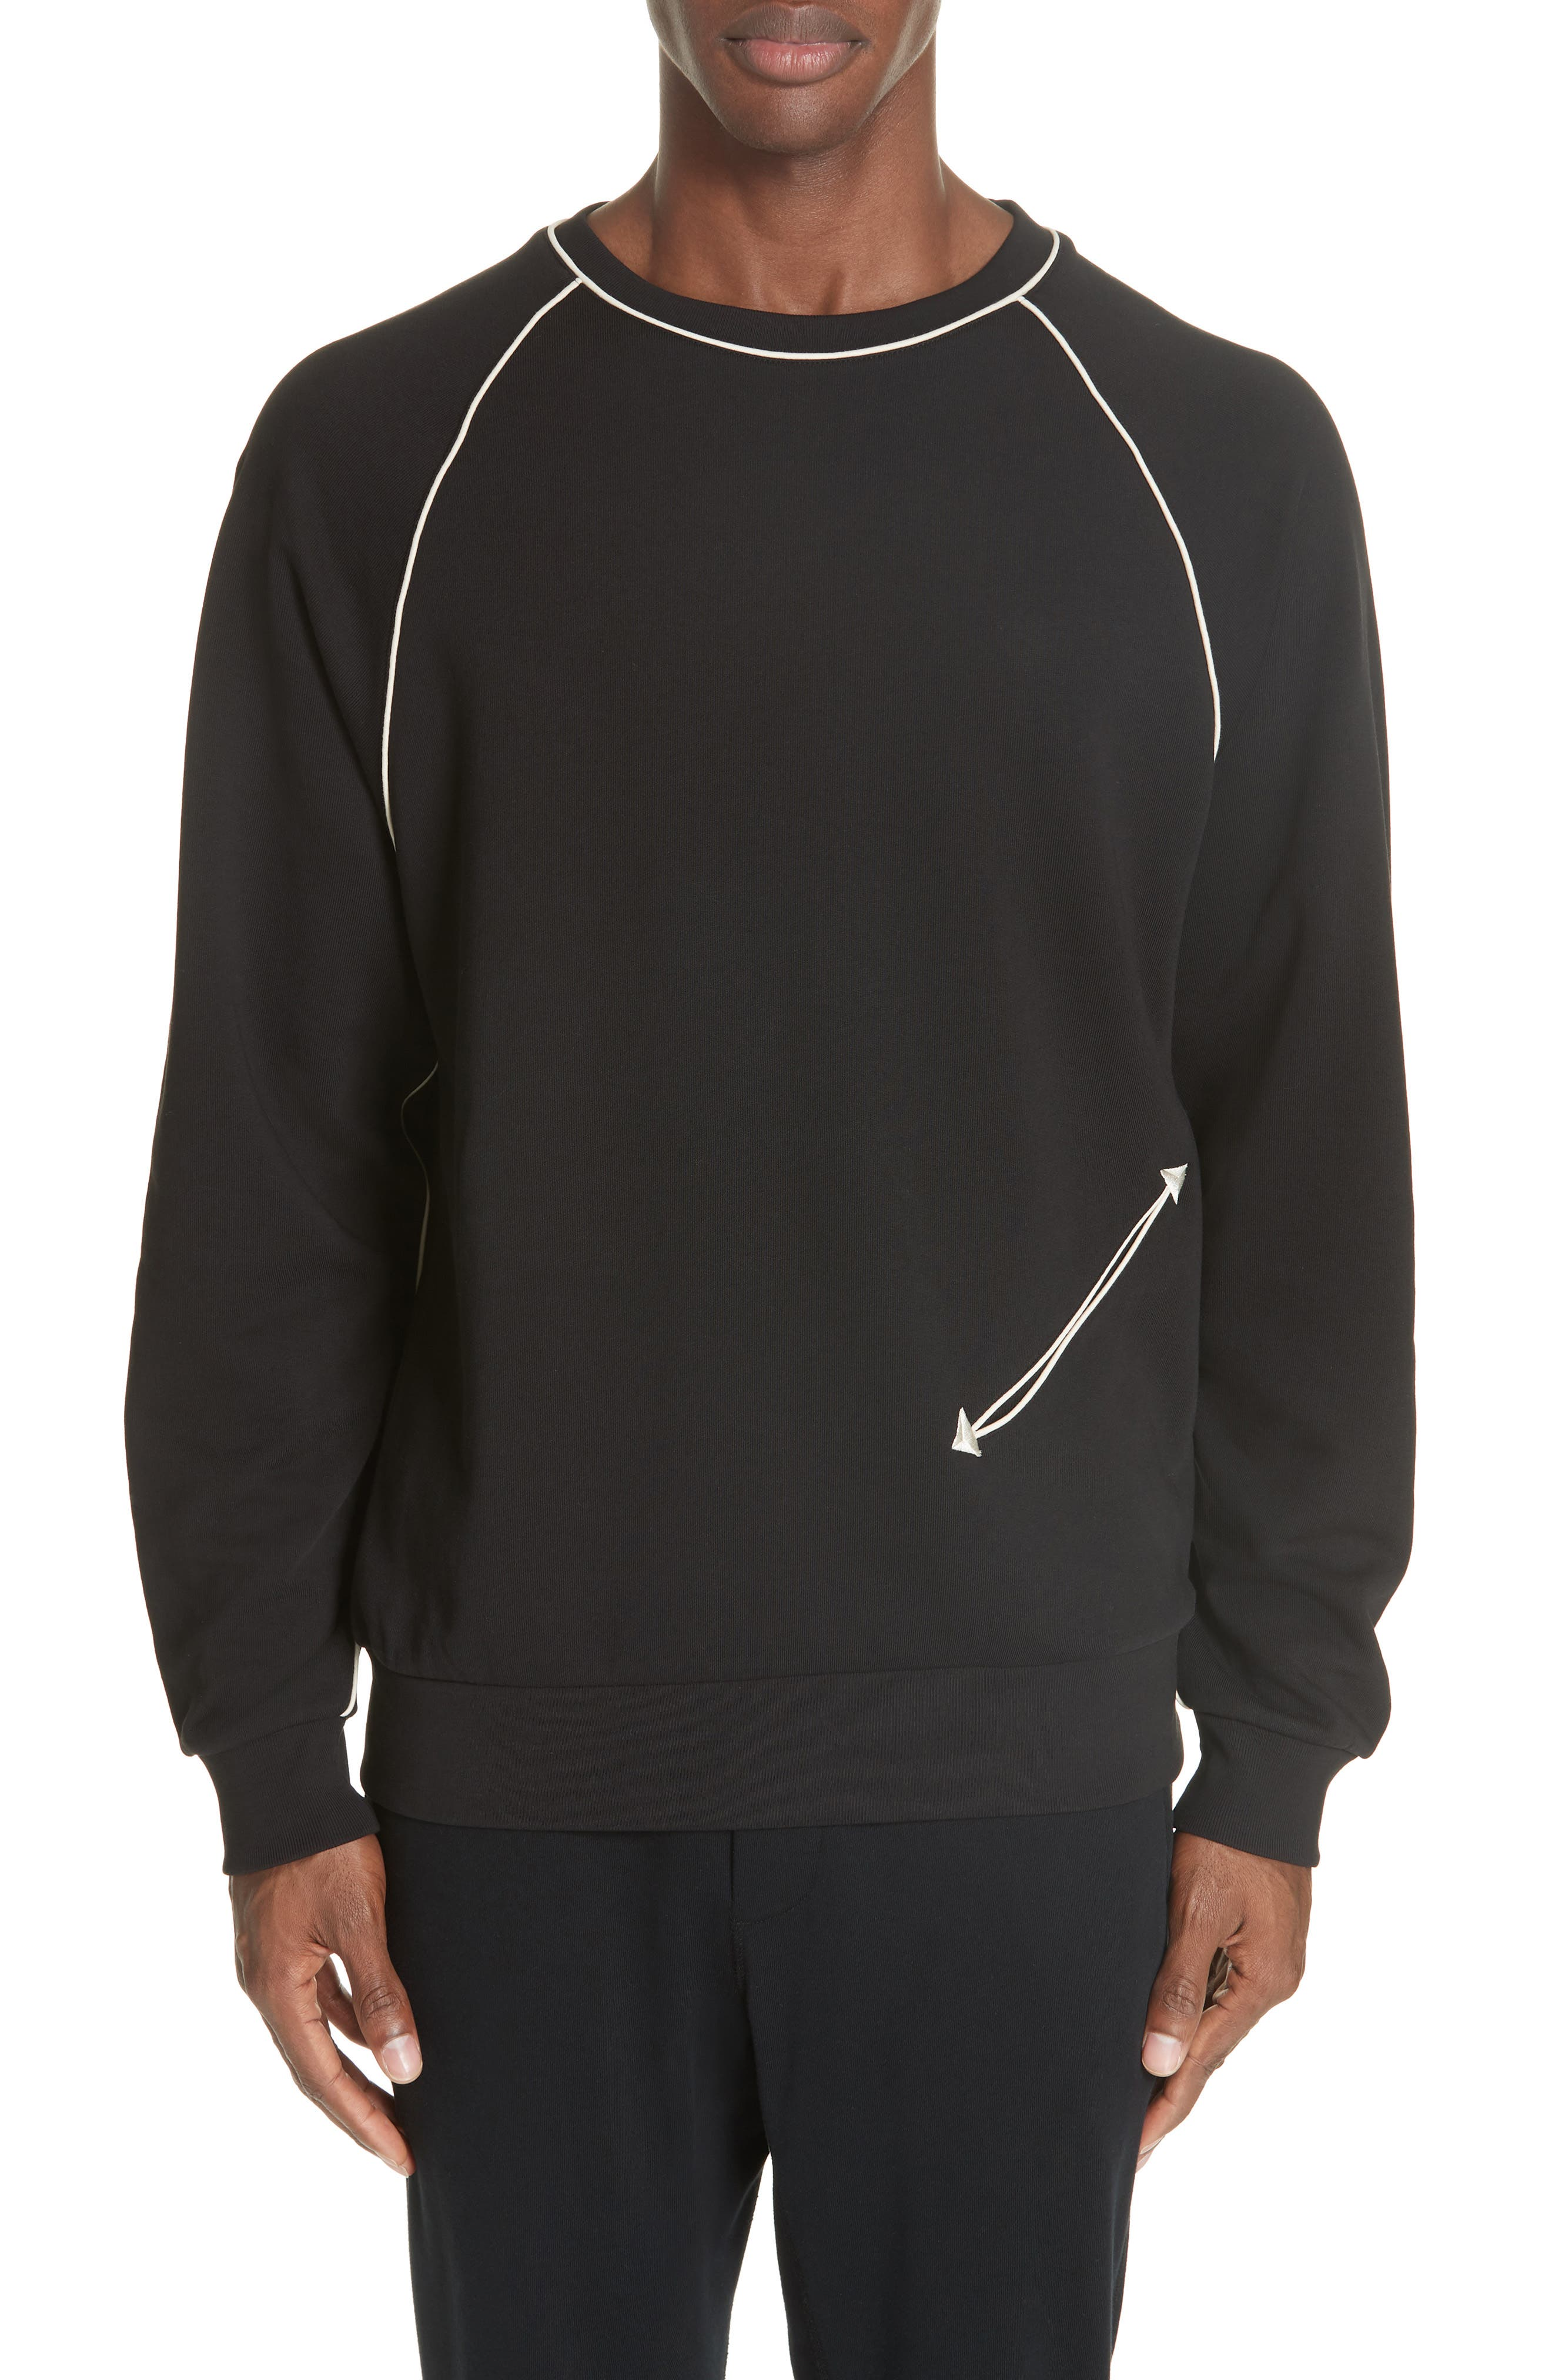 Western Piped Sweatshirt,                             Main thumbnail 1, color,                             900 BLACK